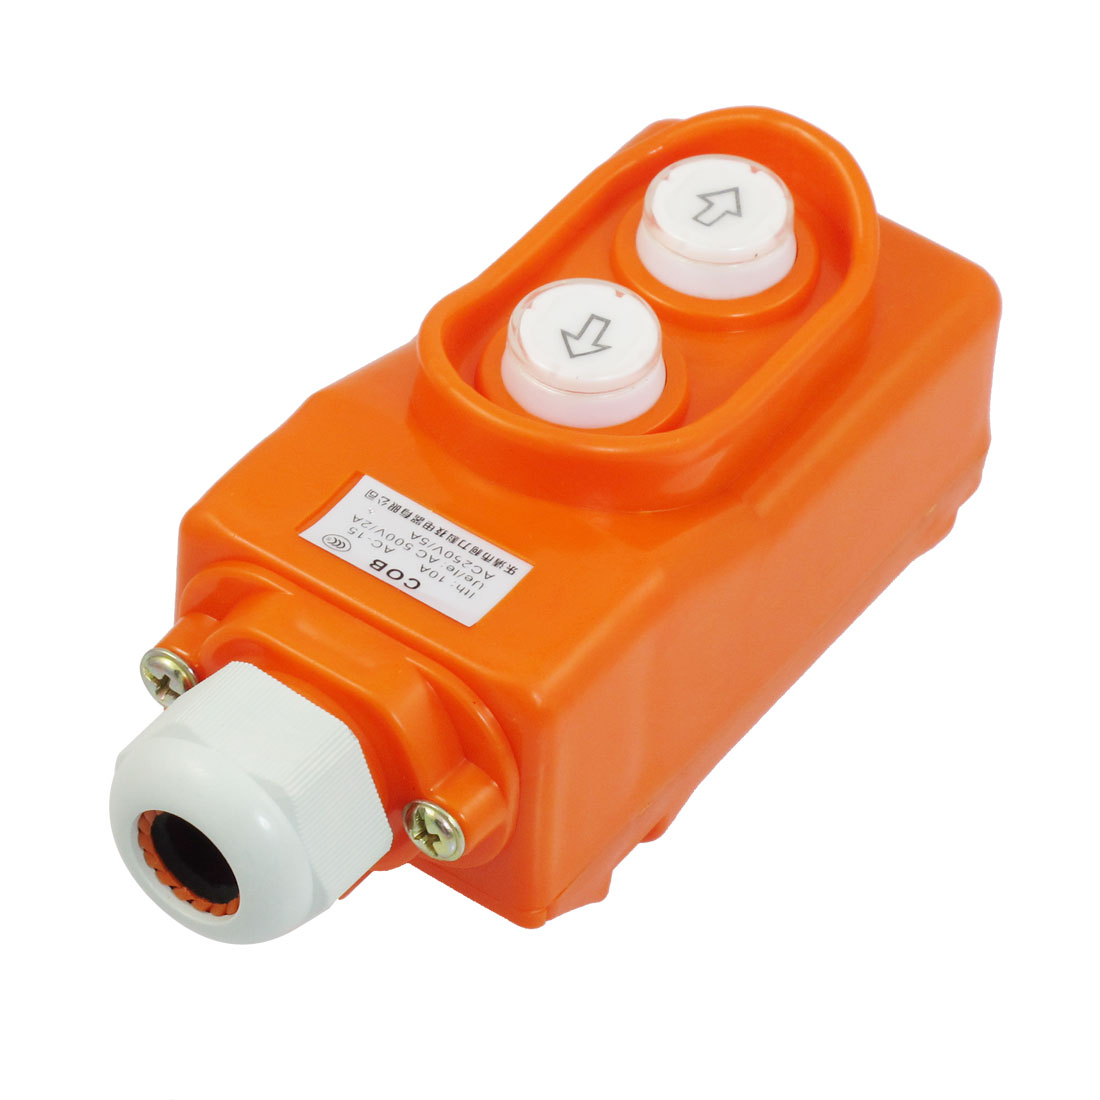 AC 500V/2A AC 250V/5A Monmentary Hoist Pushbutton Switch Orange